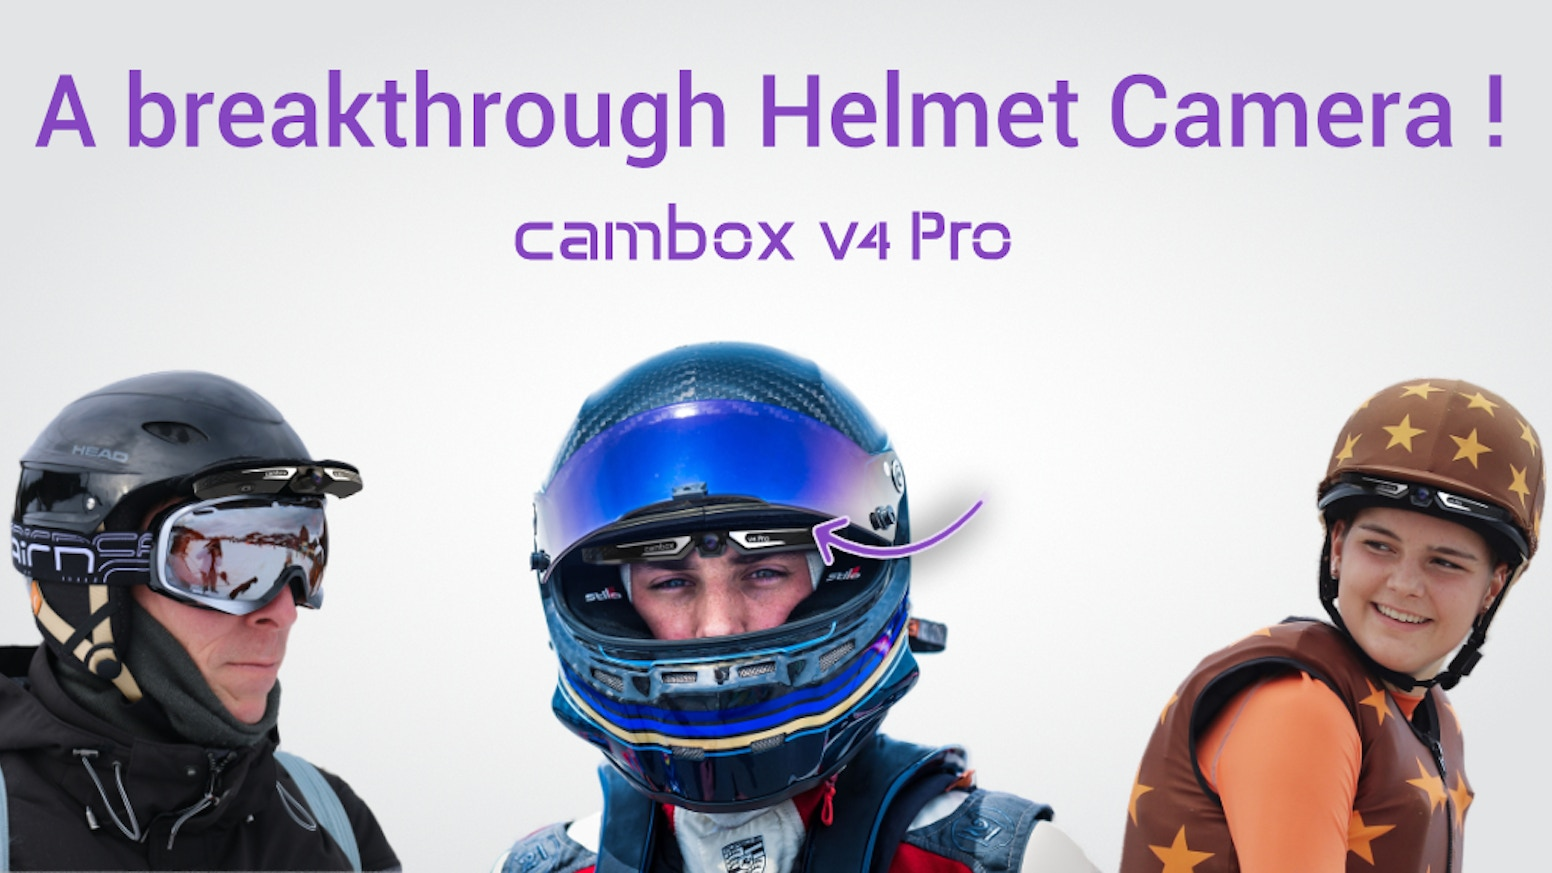 The first 4K action camera fastened under your visor. Suitable with all helmets & peaks.  Capture & Share all your footages.